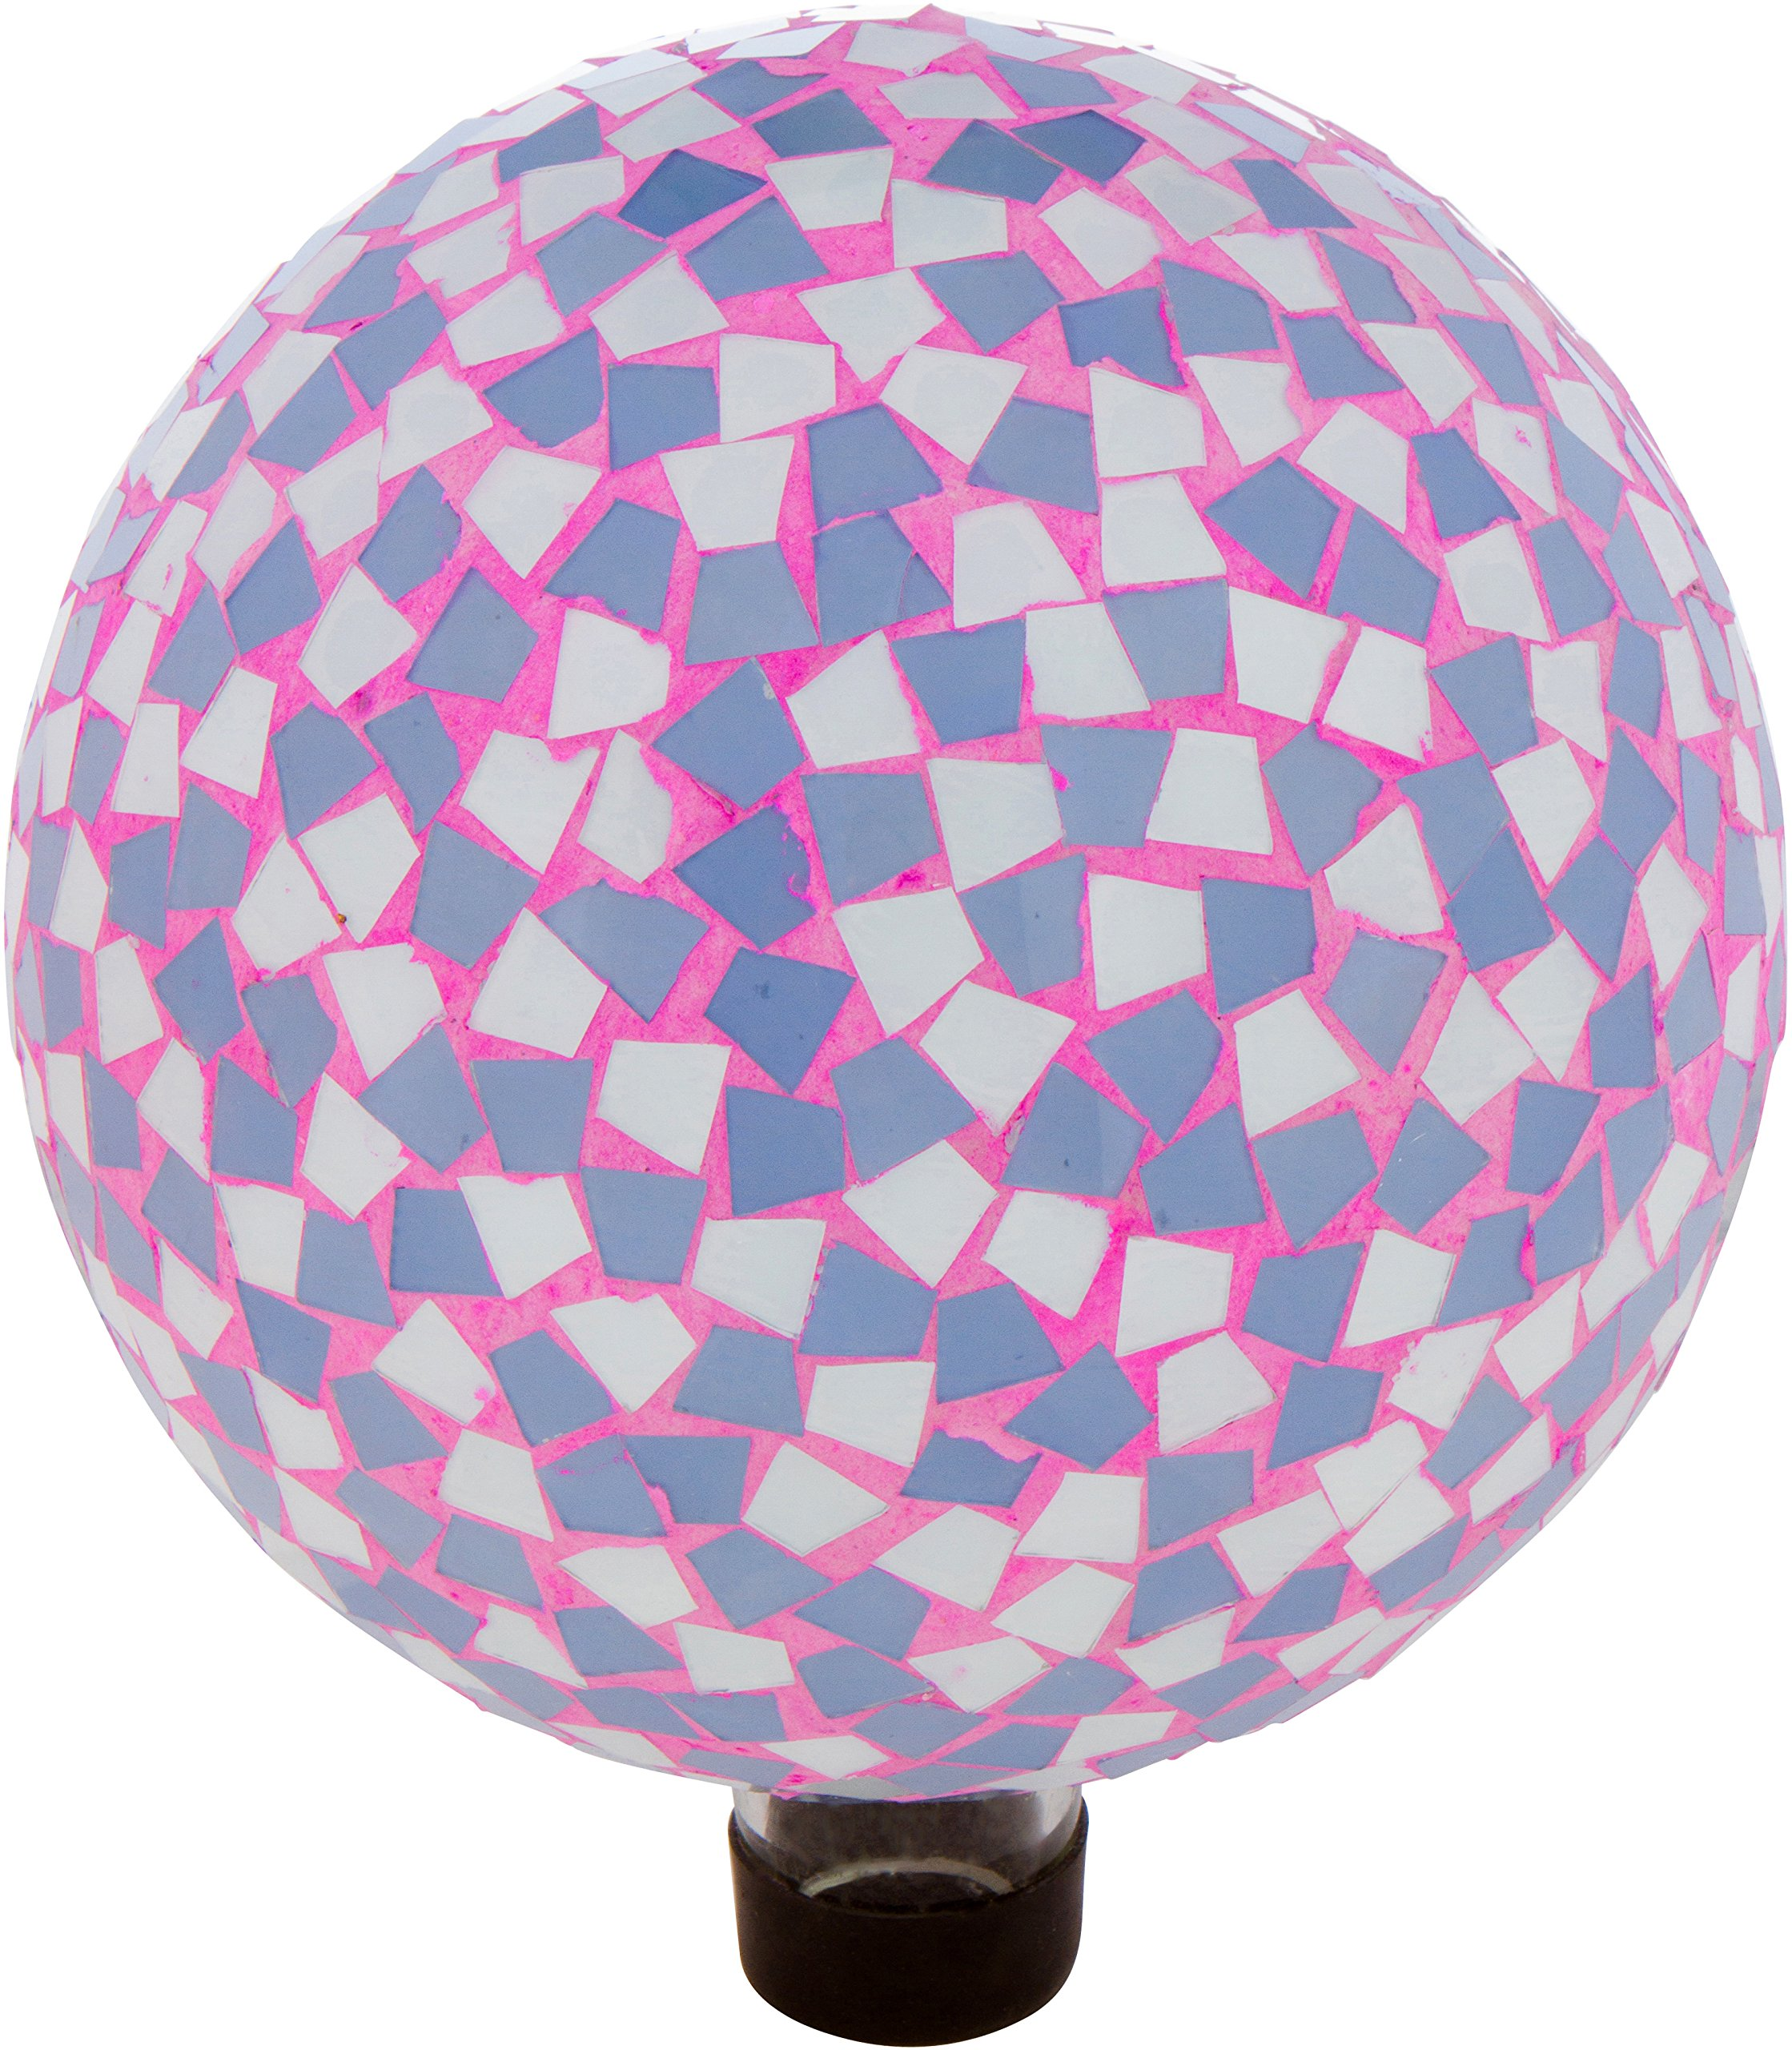 Trademark Innovations 10'' Mosaic Glass Gazing Mirror Ball (Mosaic Design)